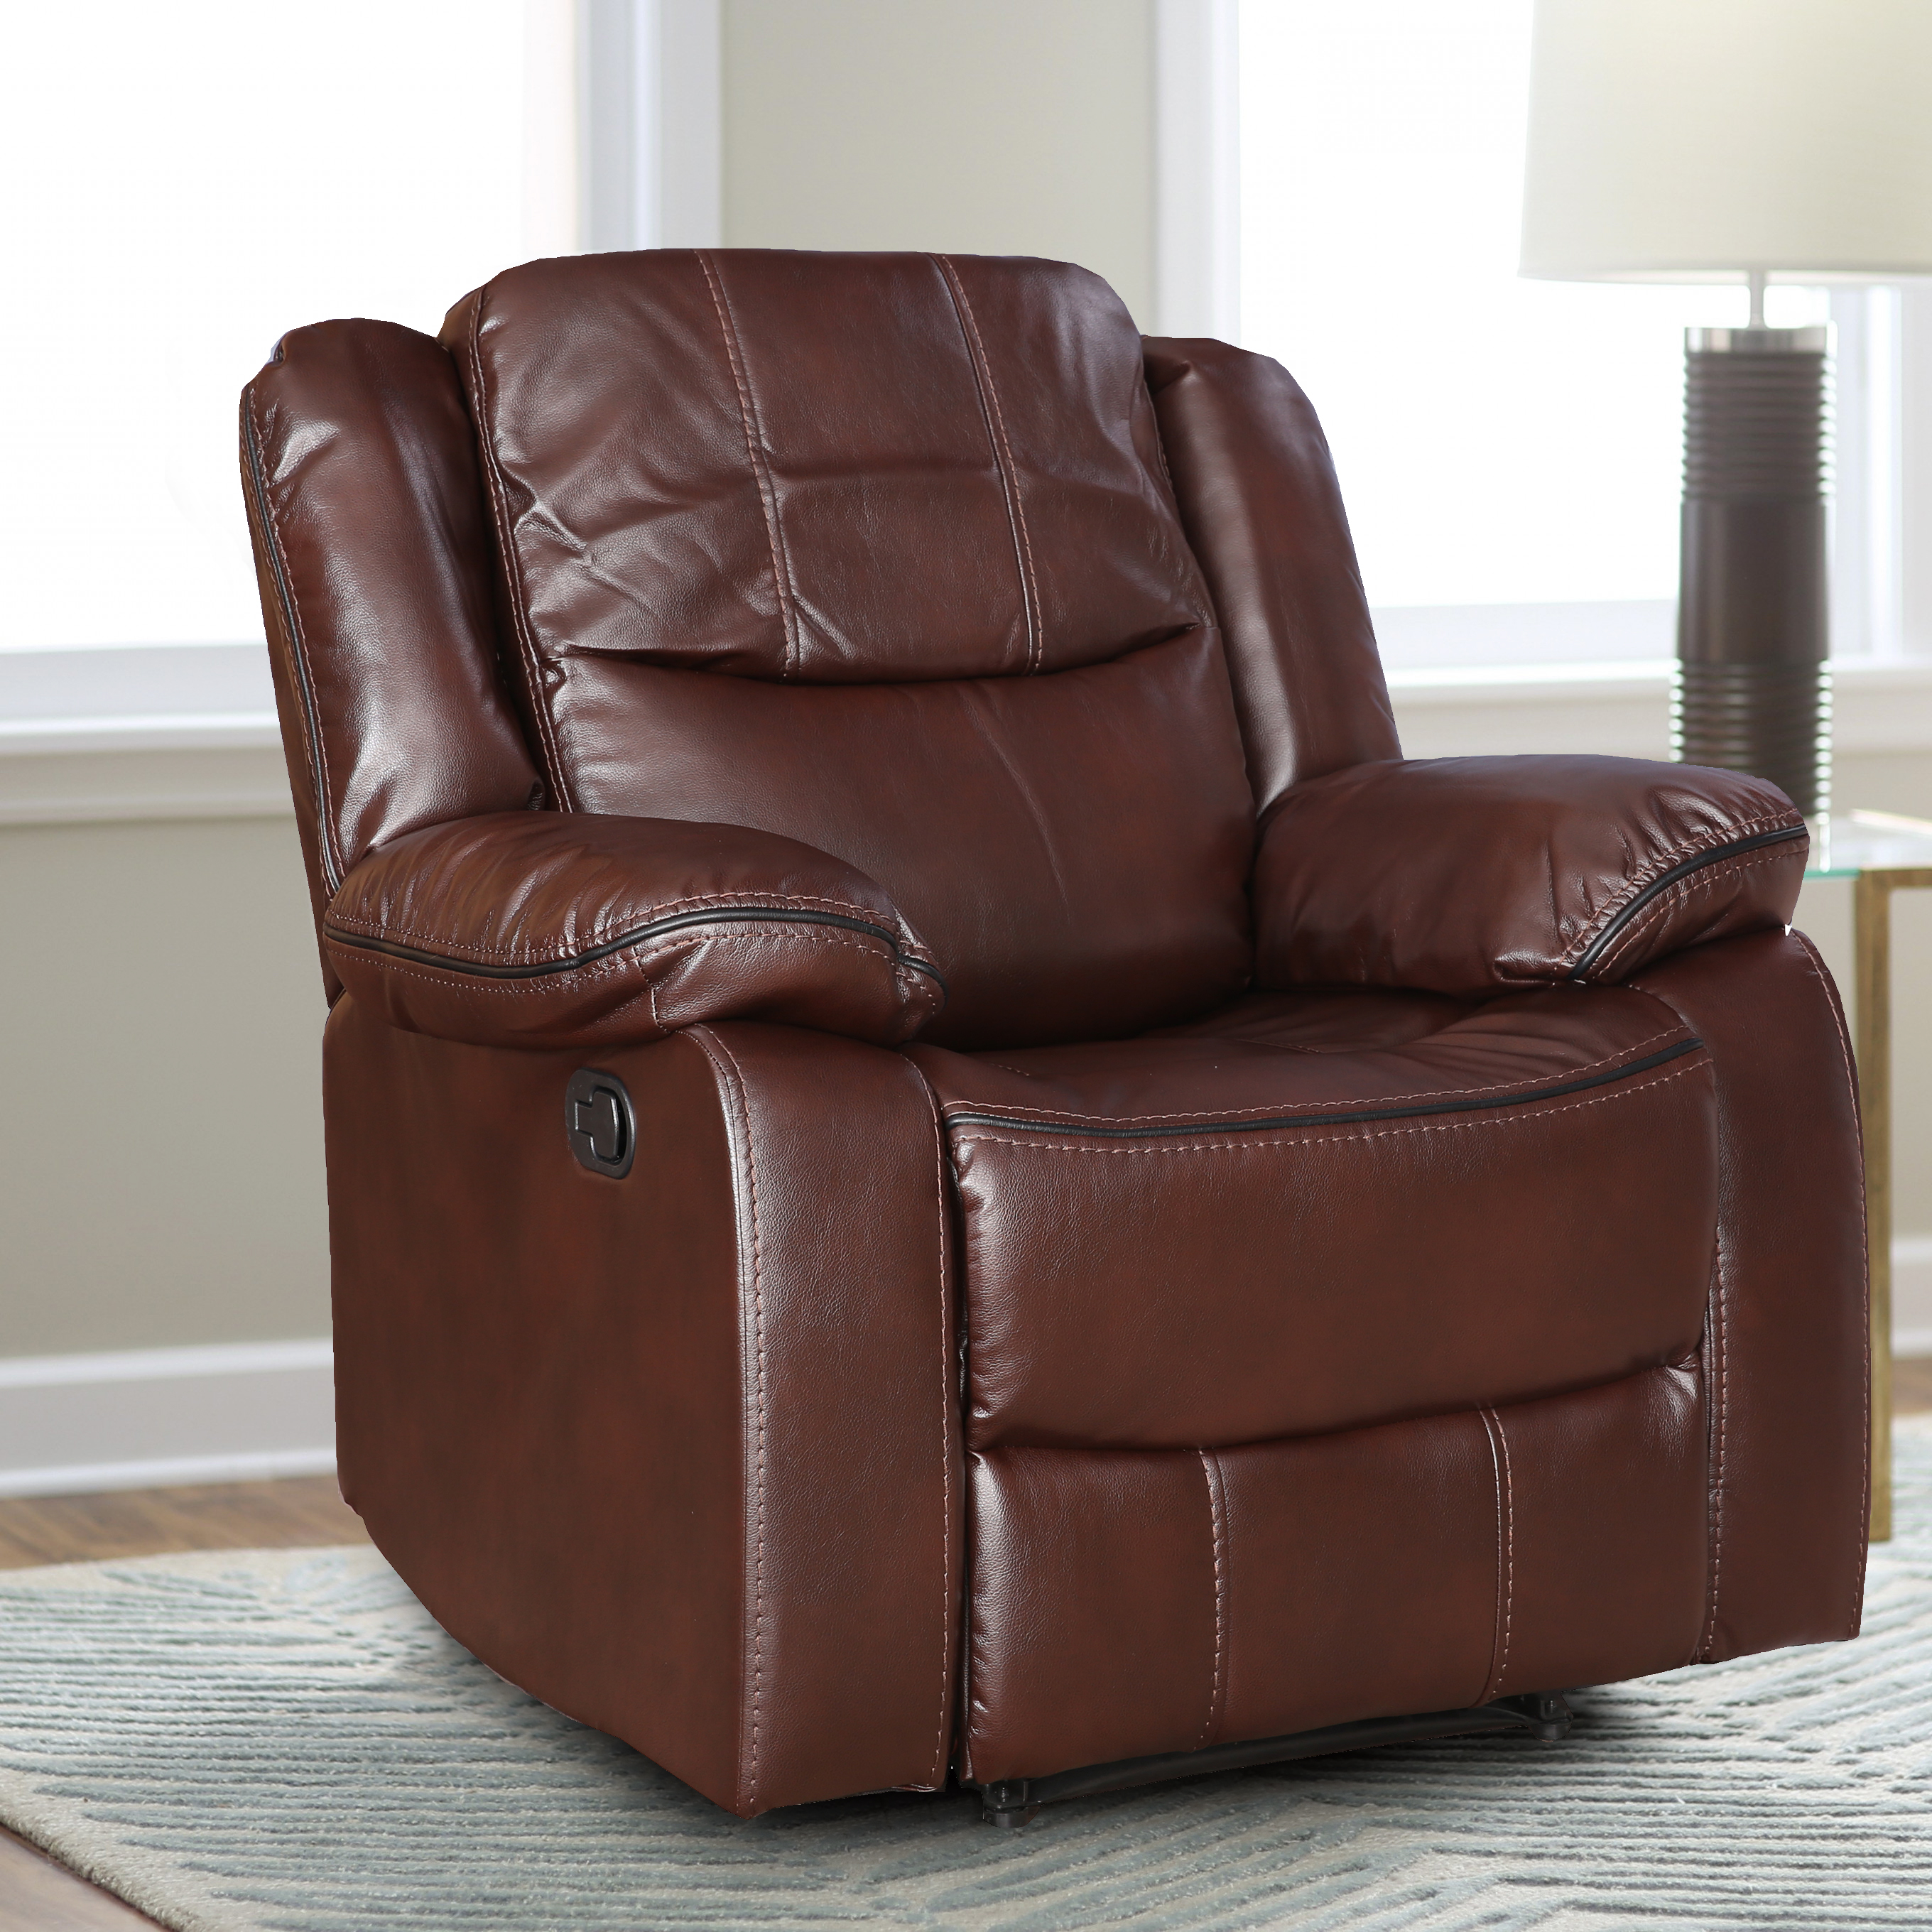 Hugo Fabric Single Seater Recliner in Brown Colour by HomeTown